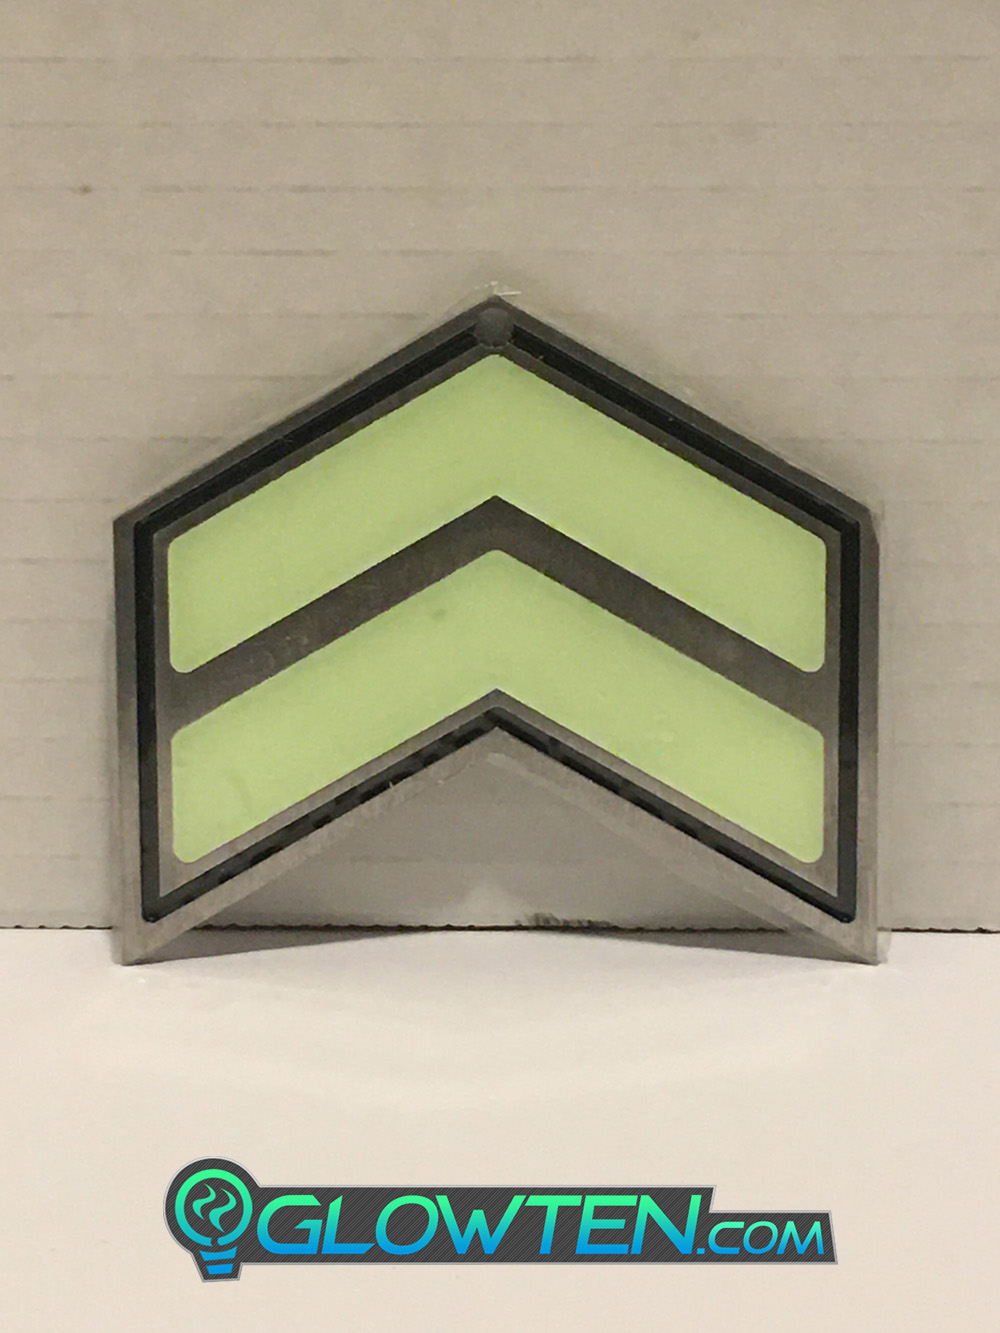 GLOWTEN.com - Safety Guidance System, Emergency Exit Directional Pointer Glow in the Dark Stairs Direction Guide Sign TWO ARROWS Pointer Photoluminescent Stainless Steel Green Glow picture photo cap preview pic image search 1